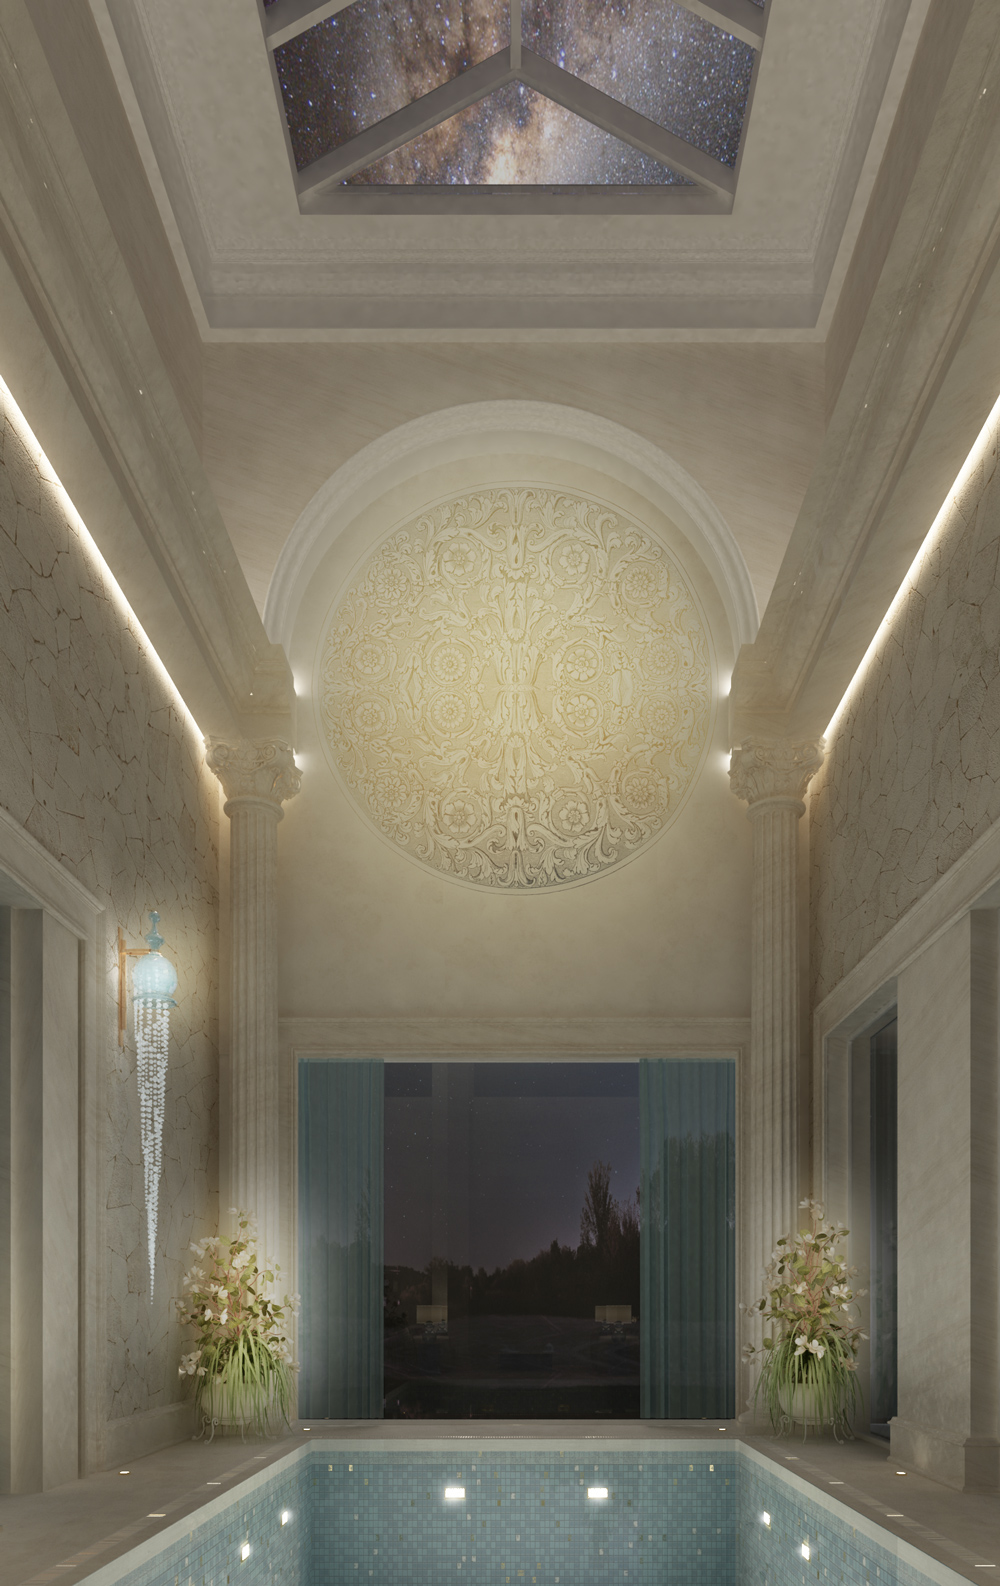 Ions Interior Design Dubai luxury interior design dubai, united arab emirates on behance